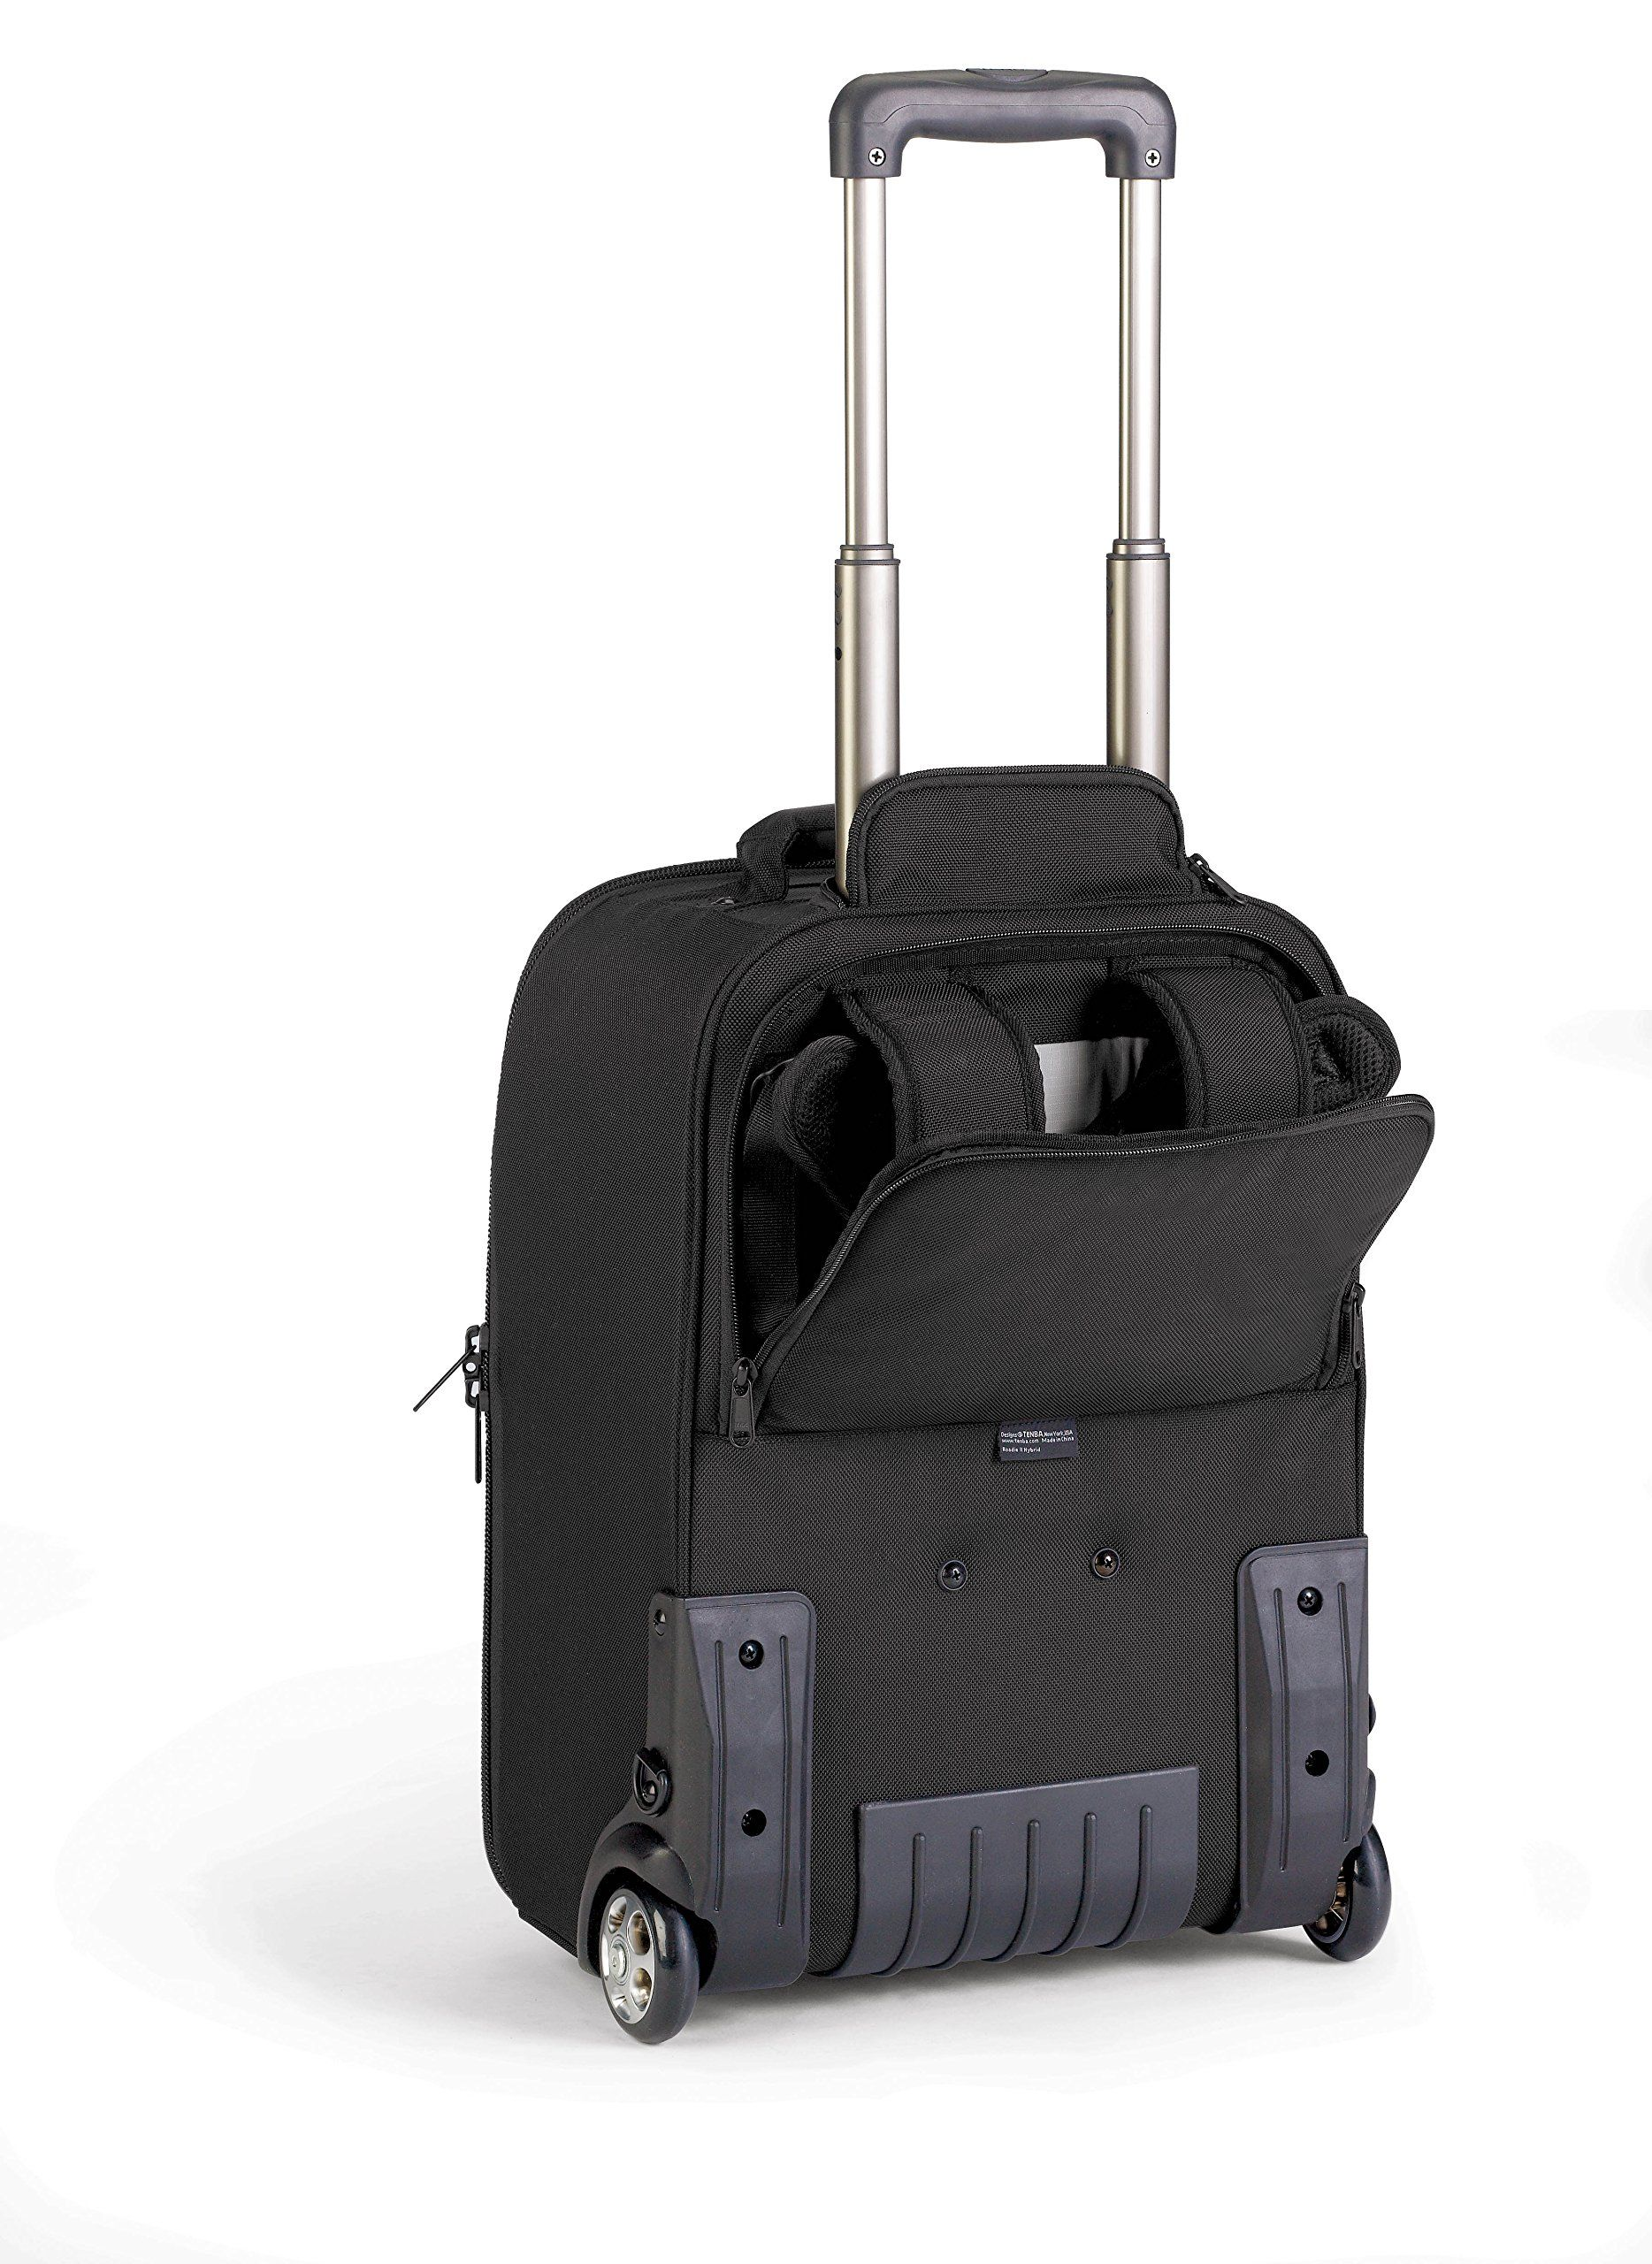 Tenba Roadie Ii Hybrid Roller Backpack For Cameras And Laptops 638330 Details Can Be Found By Clicking On The Roller Backpacks Travel Accessories Backpacks